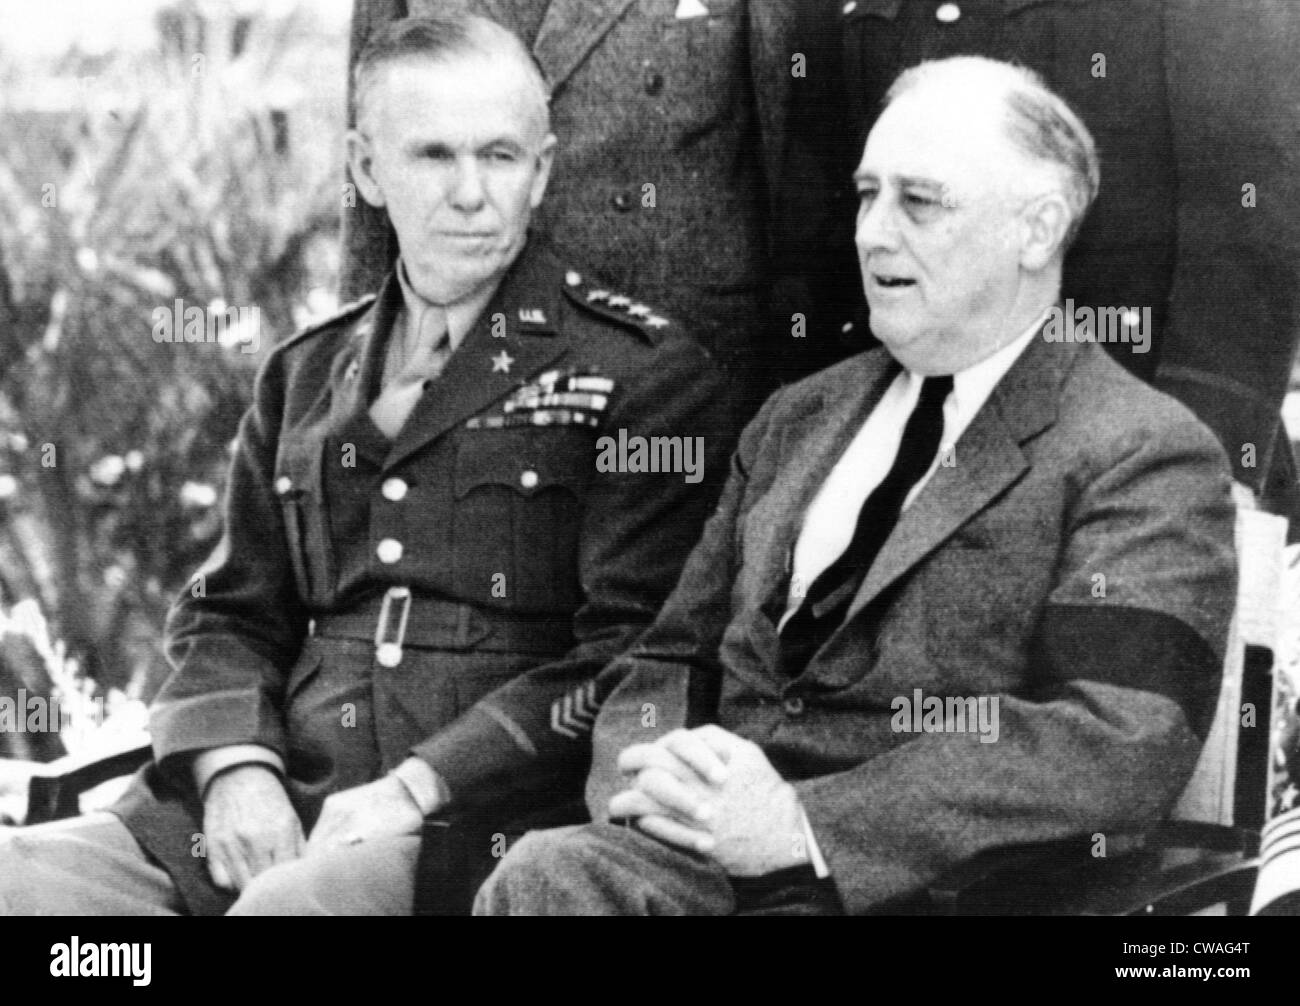 General george c marshall quotes - General George C Marshall President Franklin D Roosevelt Africa 1943